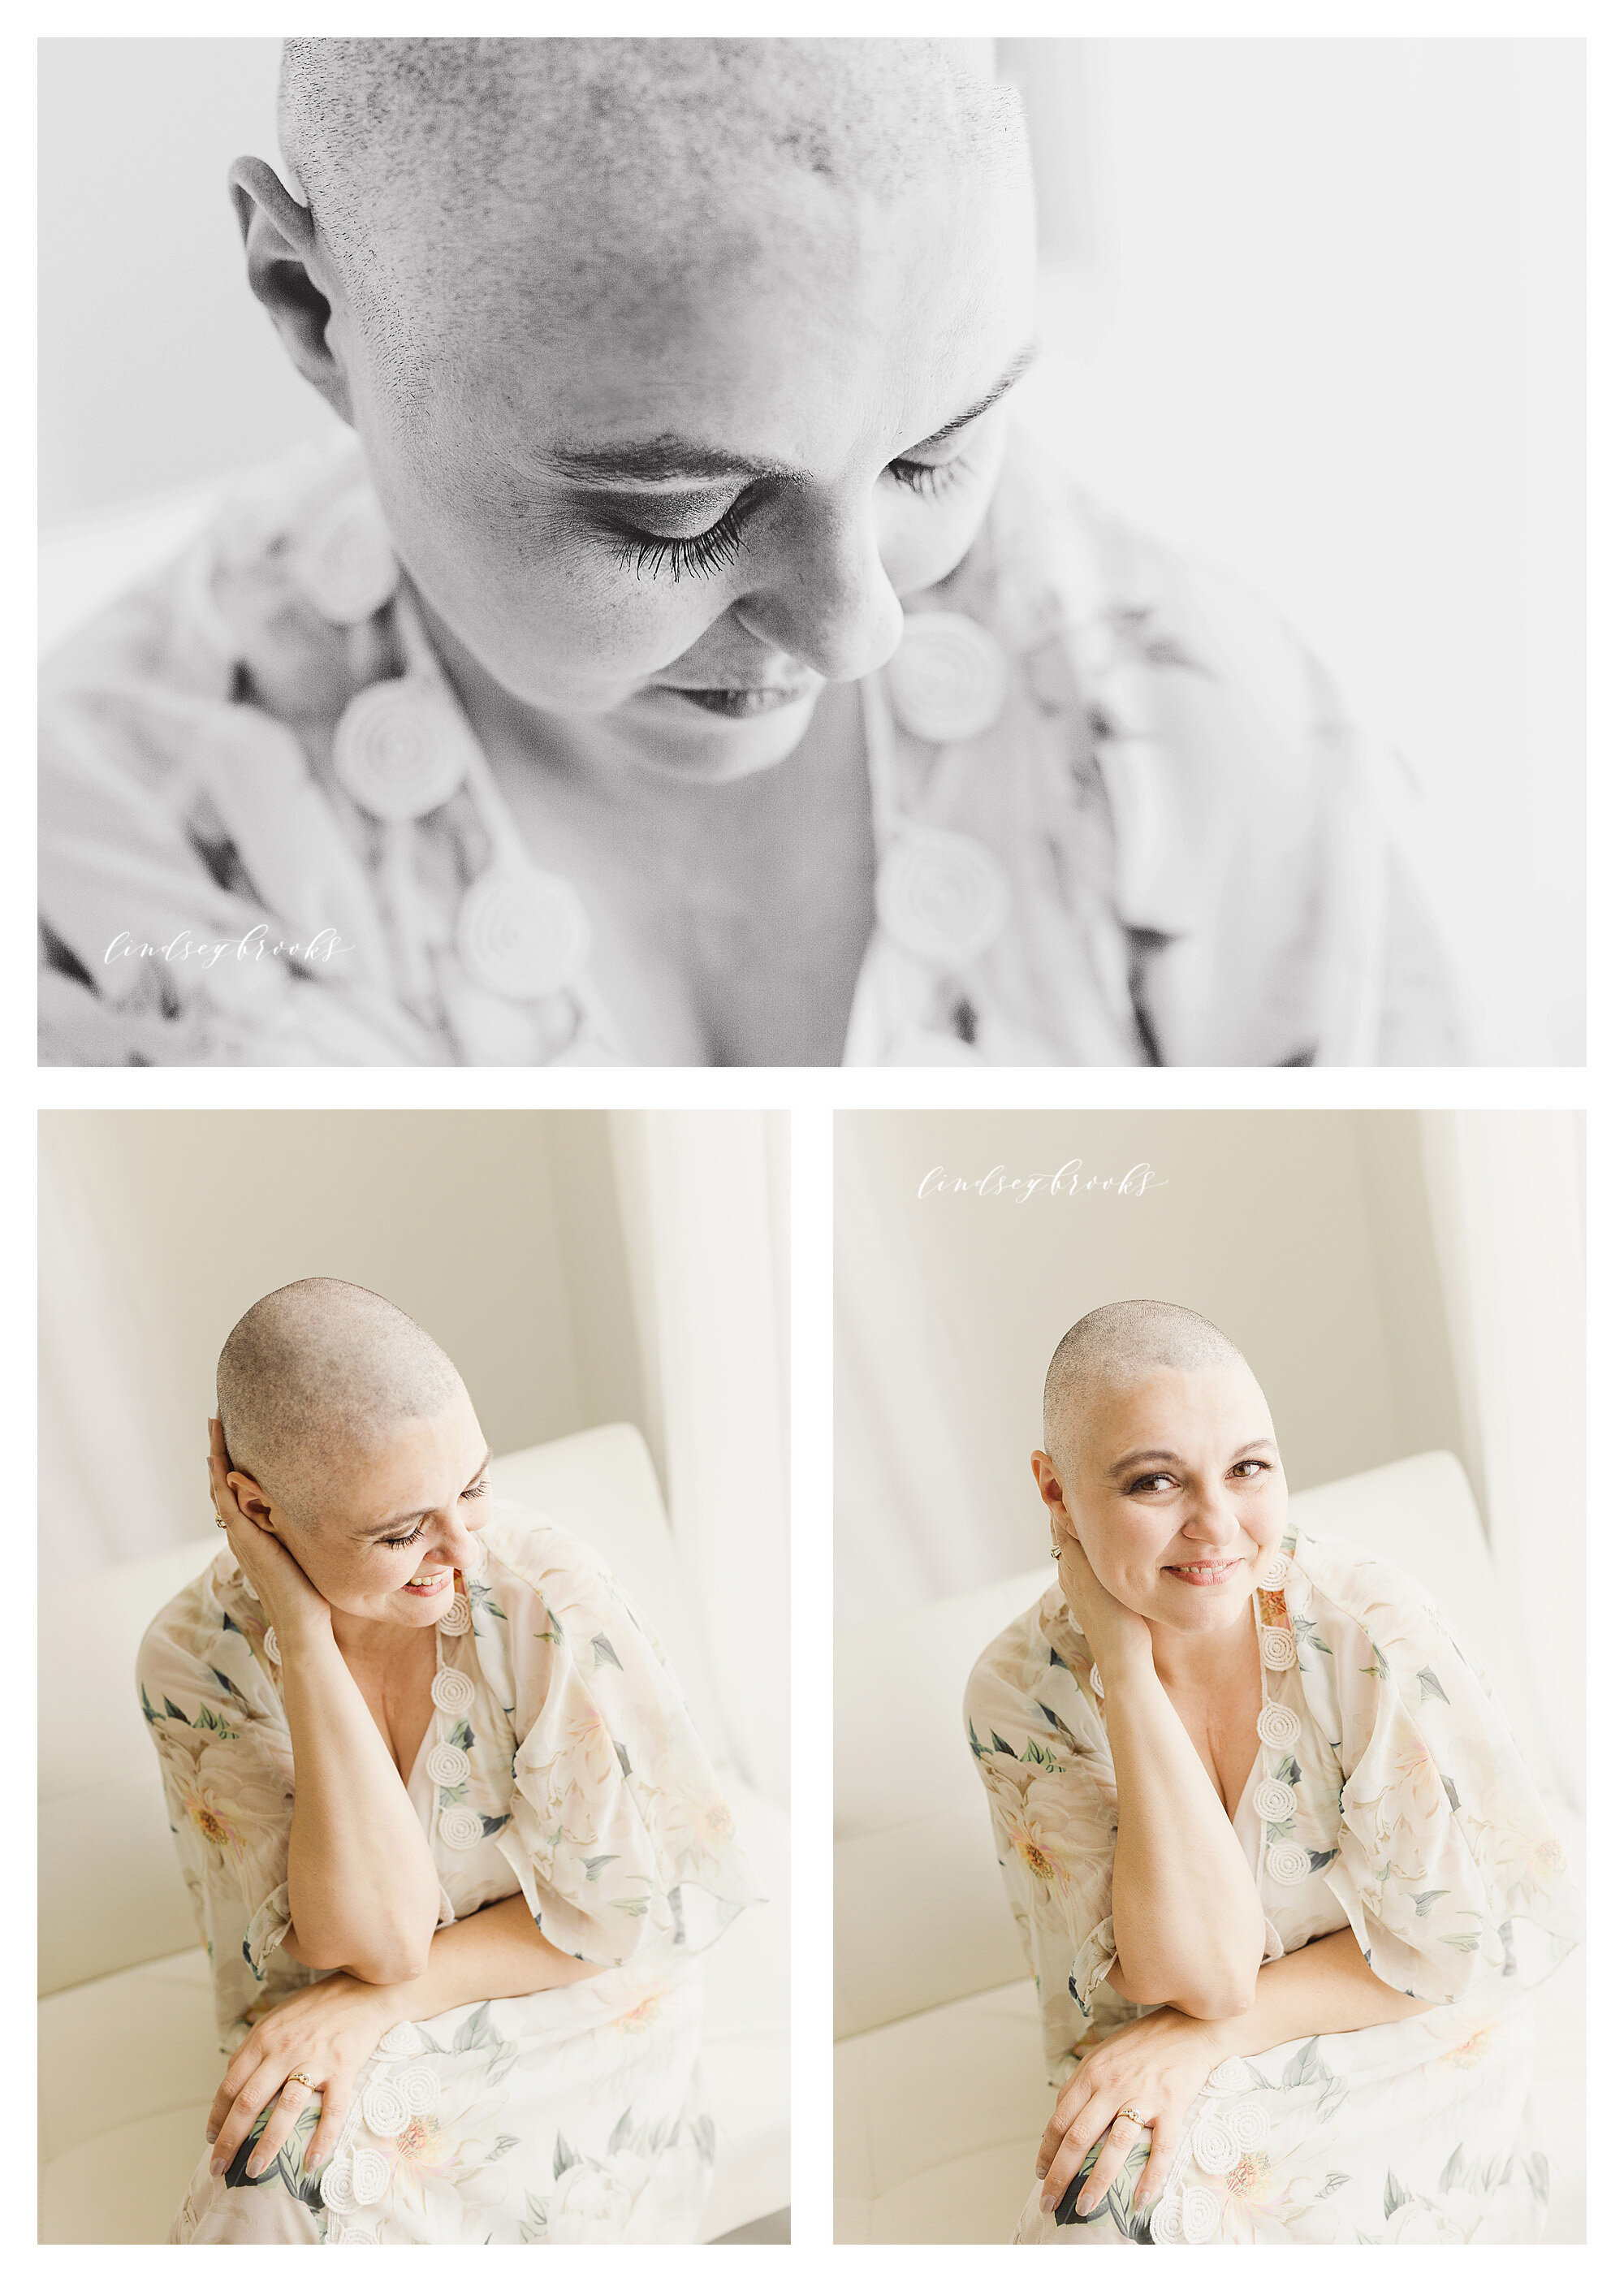 brace_shave_session_breast_cancer_awareness_month.jpg